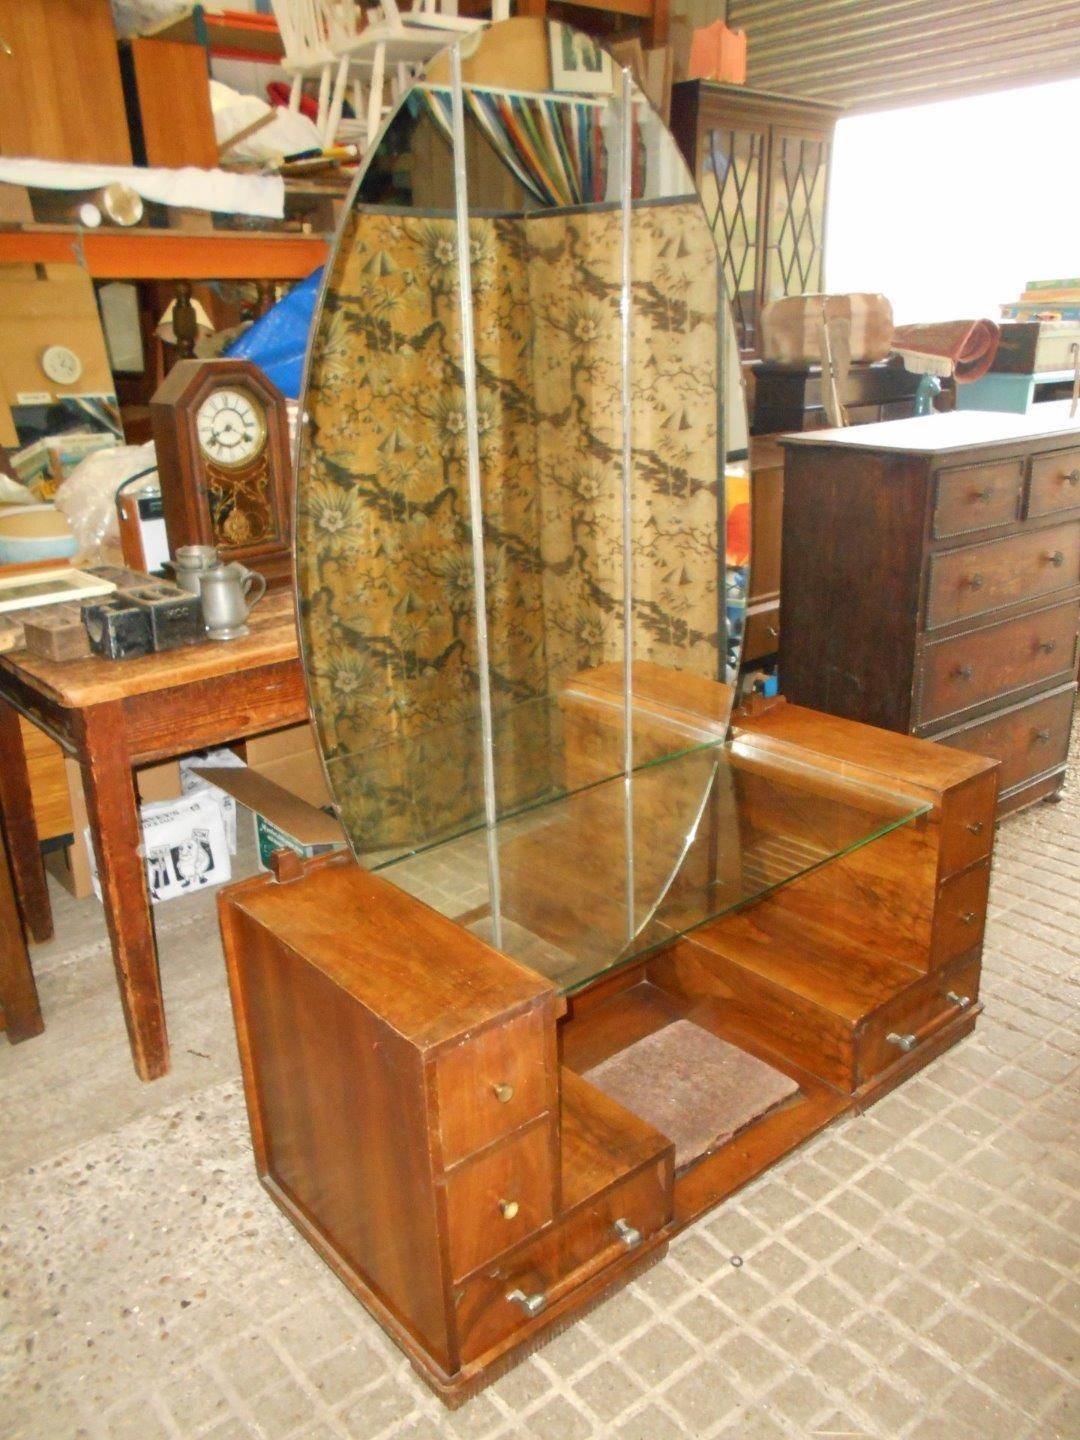 Art Deco 1930s Dressing Table With Large Oval Mirror Pertaining To Art Deco Mirrored Dressing Table (Image 4 of 15)